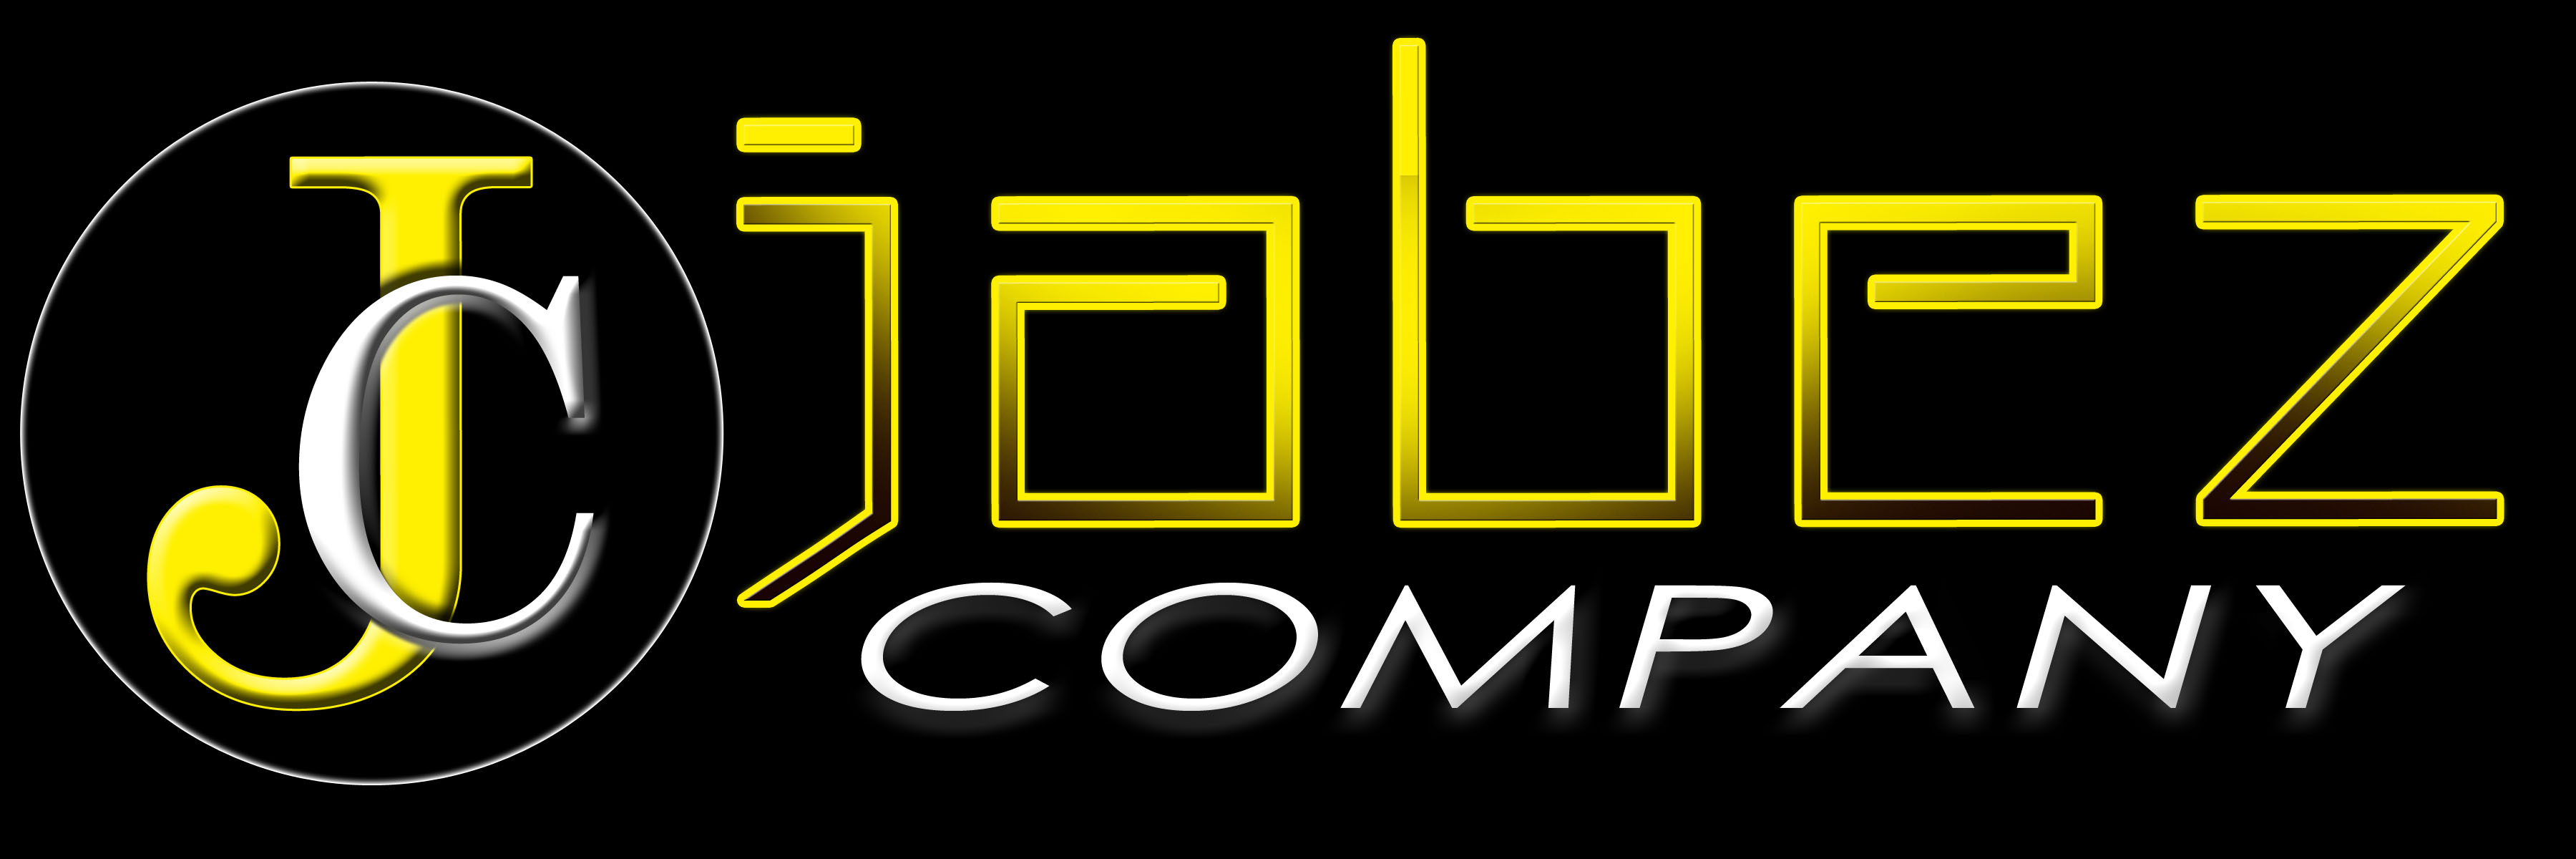 Logo Design by Davy Jones Estrellanes - Entry No. 71 in the Logo Design Contest New Logo Design for Jabez Compnay, LLC.